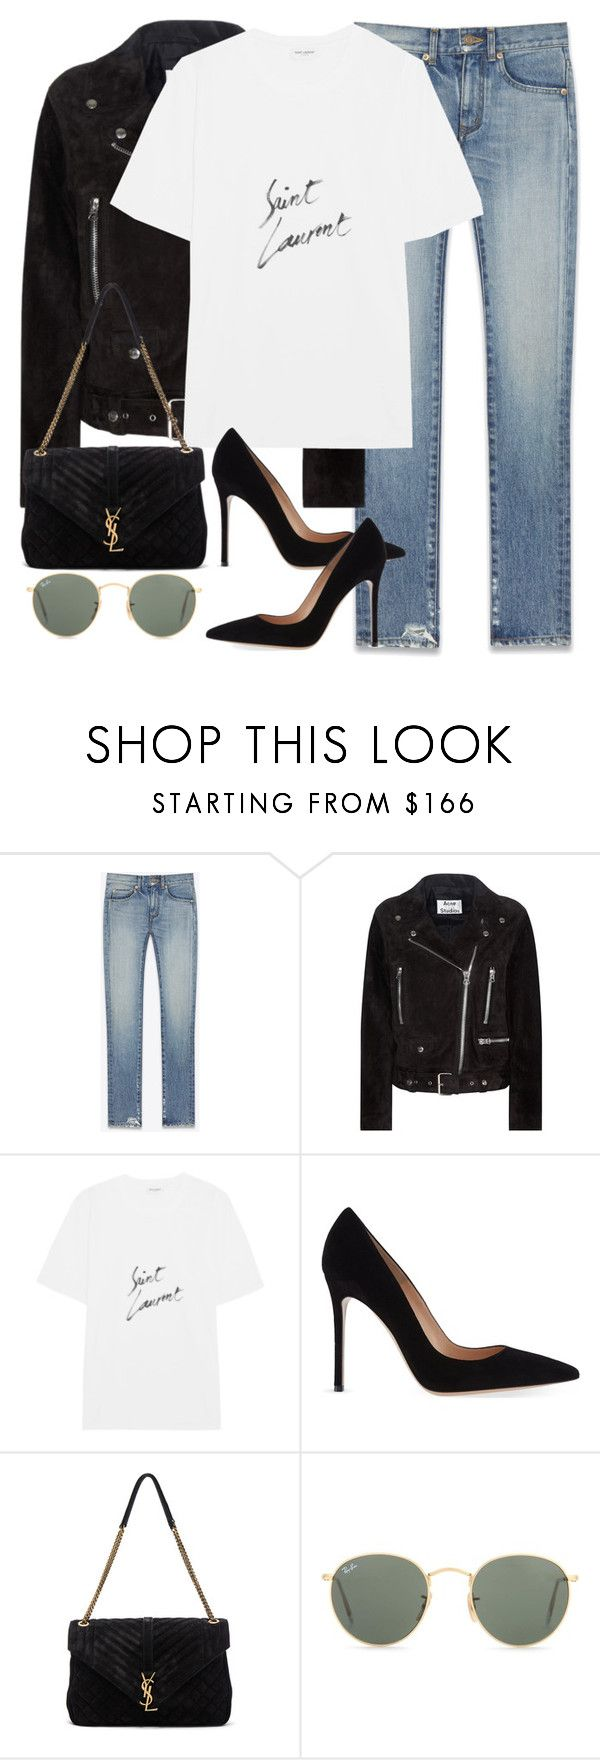 """""""Untitled #3168"""" by elenaday ❤ liked on Polyvore featuring Yves Saint Laurent, Acne Studios, Gianvito Rossi and Ray-Ban"""